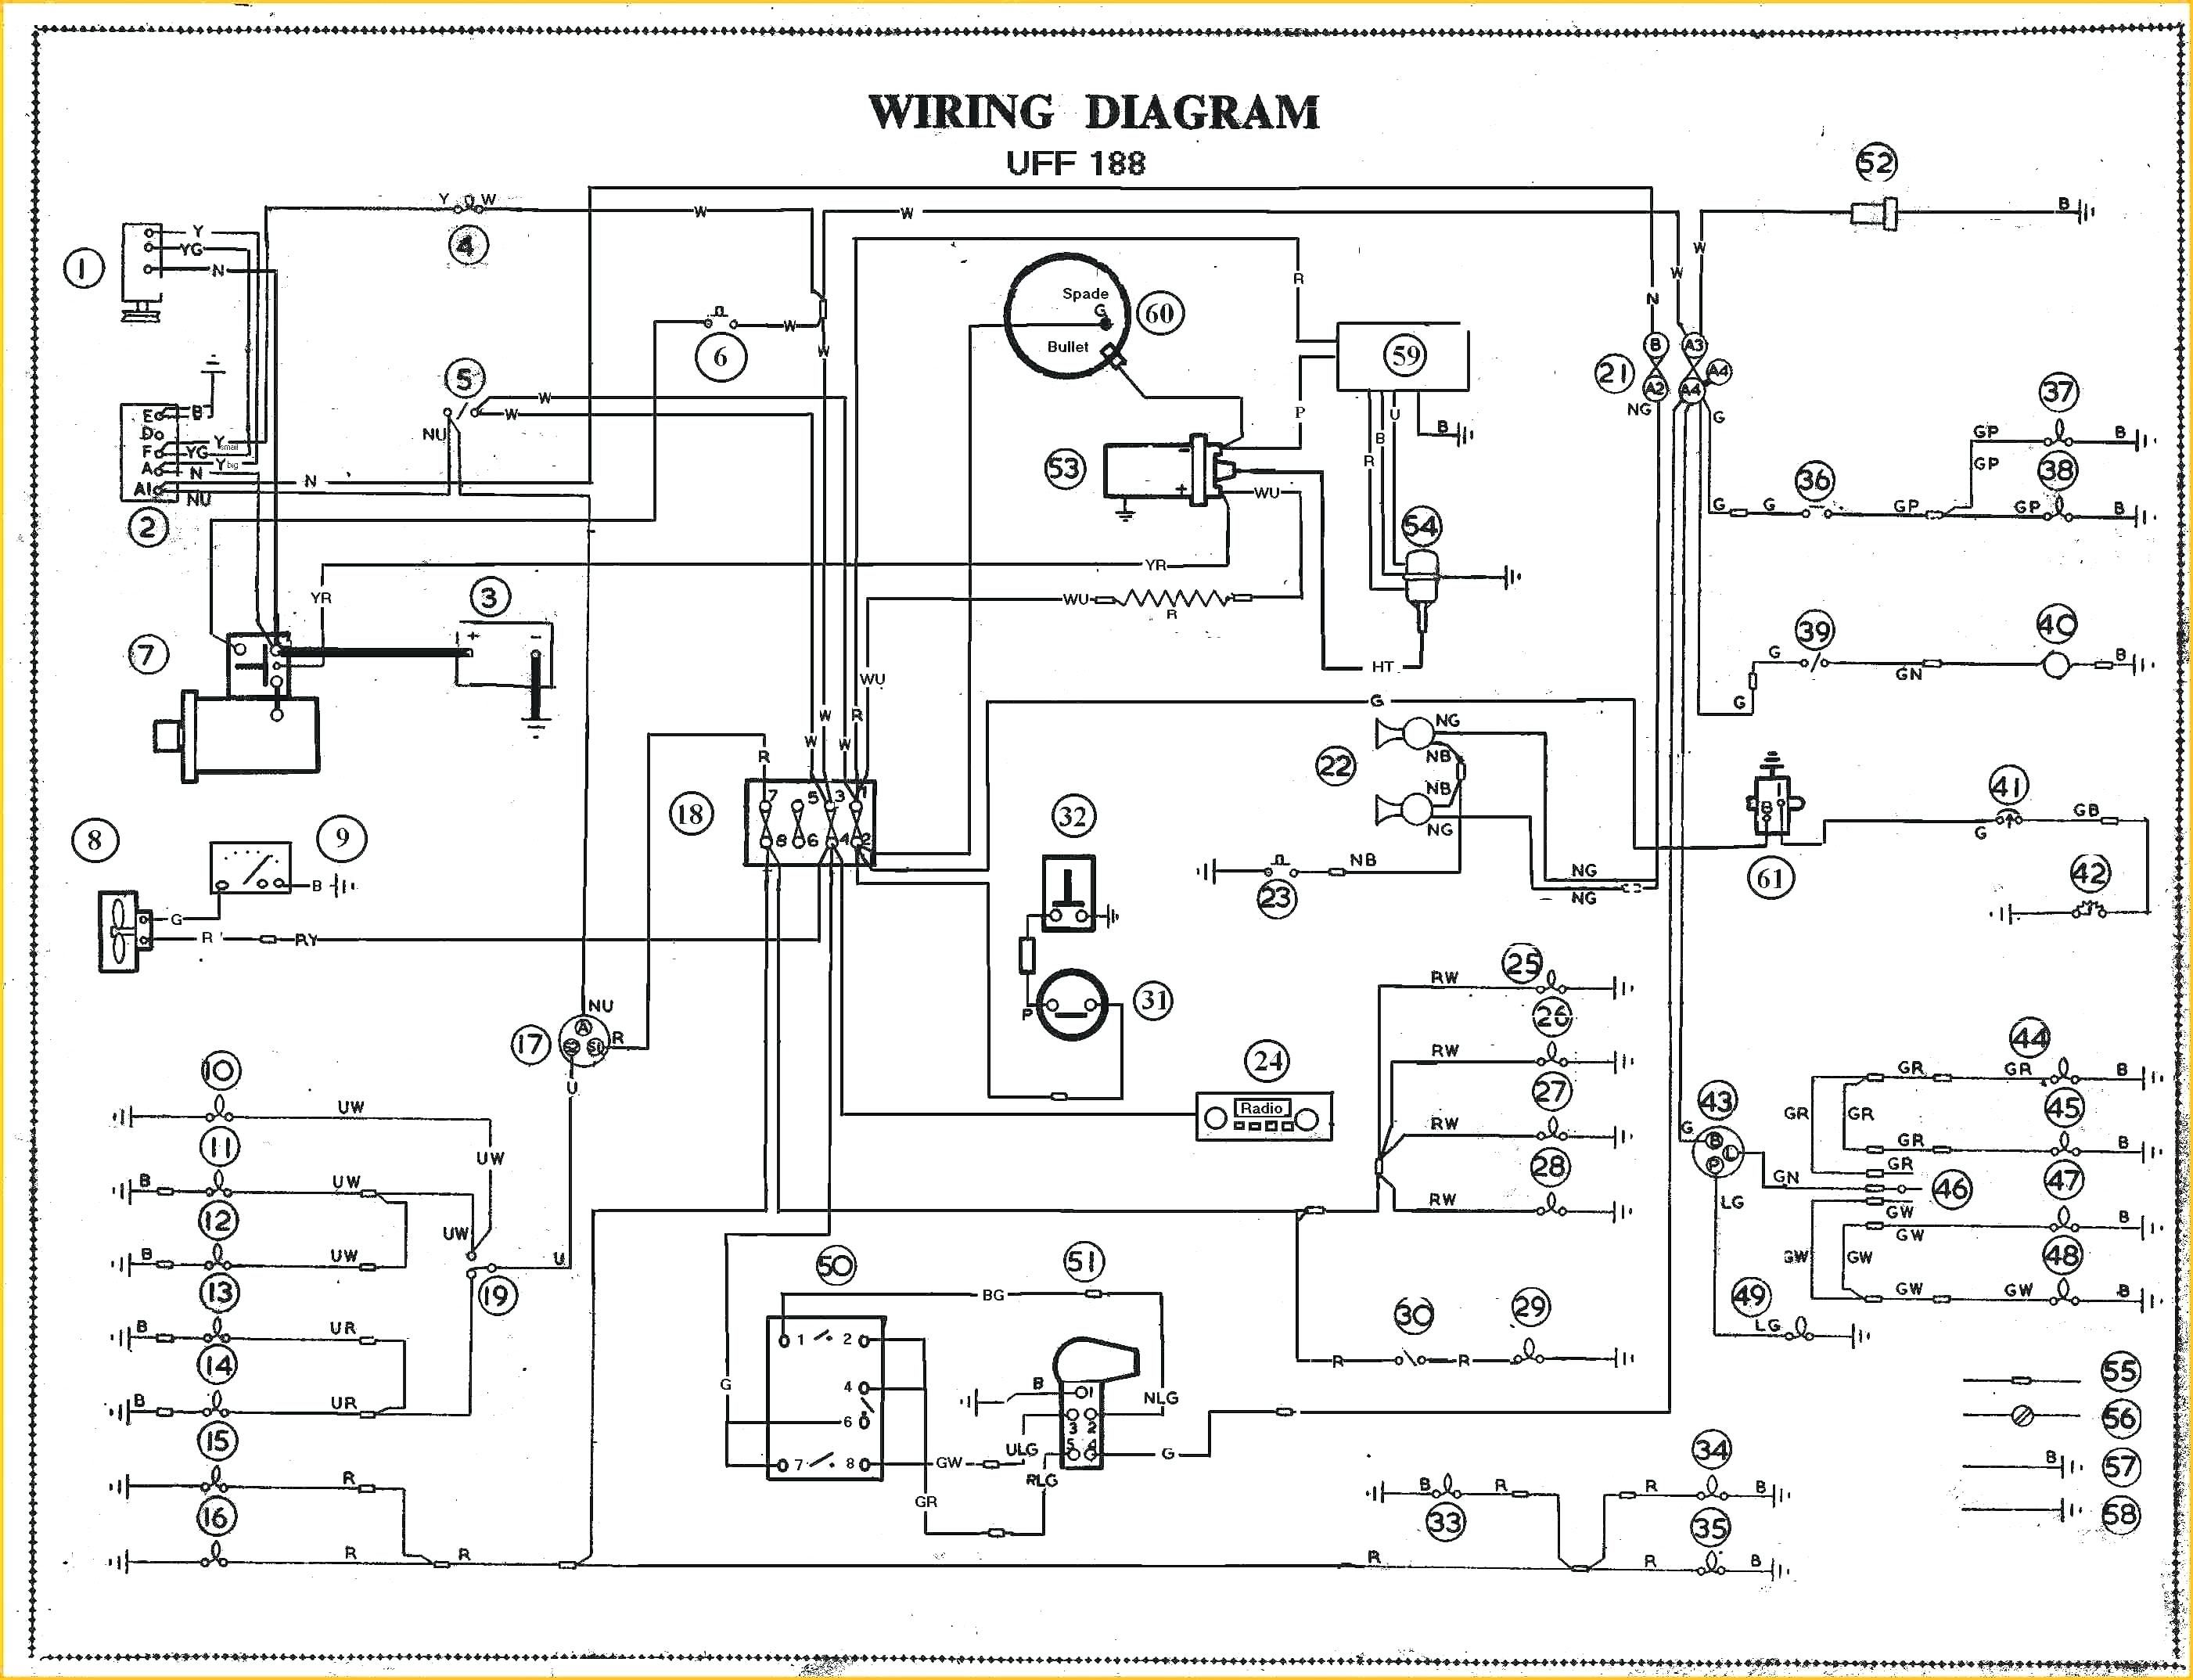 basic hvac wiring diagrams schematics at diagram pdf hvacr in 2019 wiring diagram of car pdf [ 2803 x 2147 Pixel ]